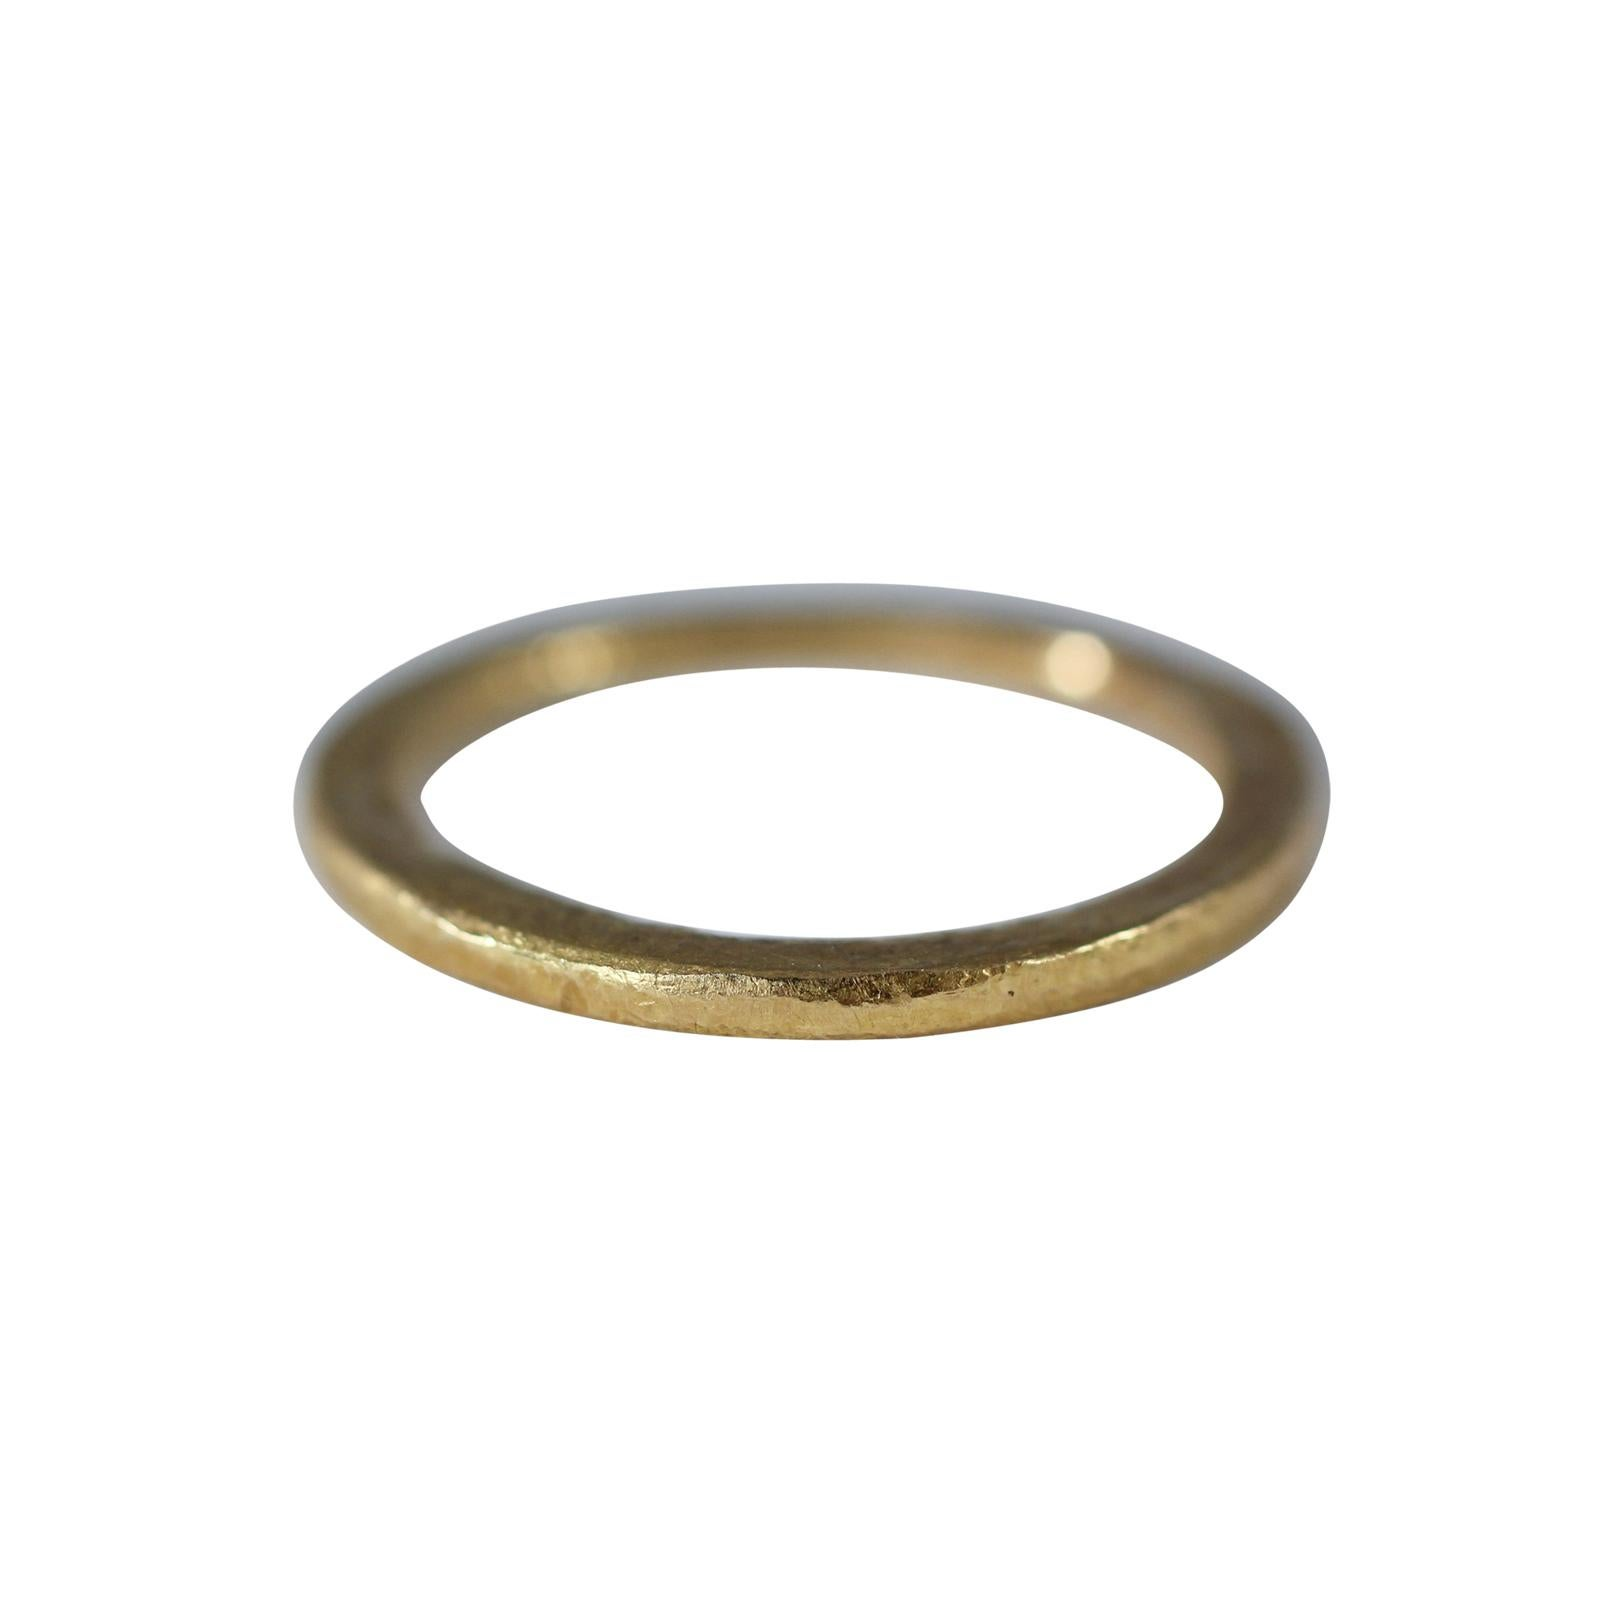 22k-21k Gold Ring Stackable Bridal Wedding Band More Contemporary Fashion Ideas